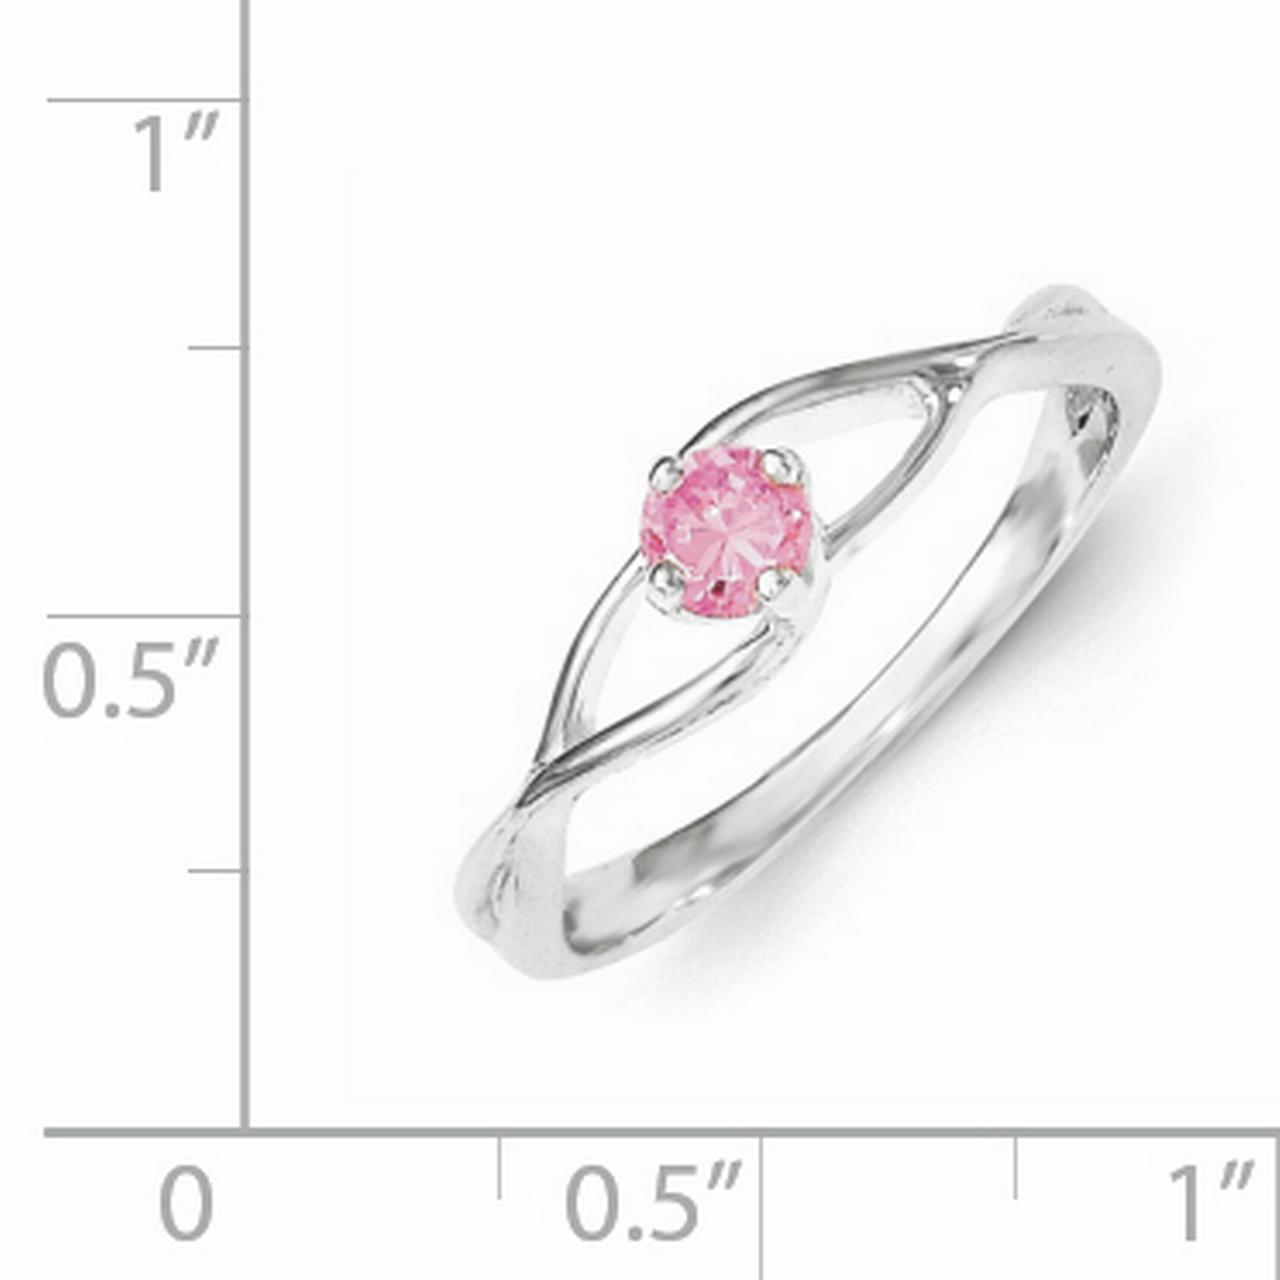 925 Sterling Silver Pink Cubic Zirconia Cz Sol Band Ring Size 6.00 Fine Jewelry Gifts For Women For Her - image 2 of 3